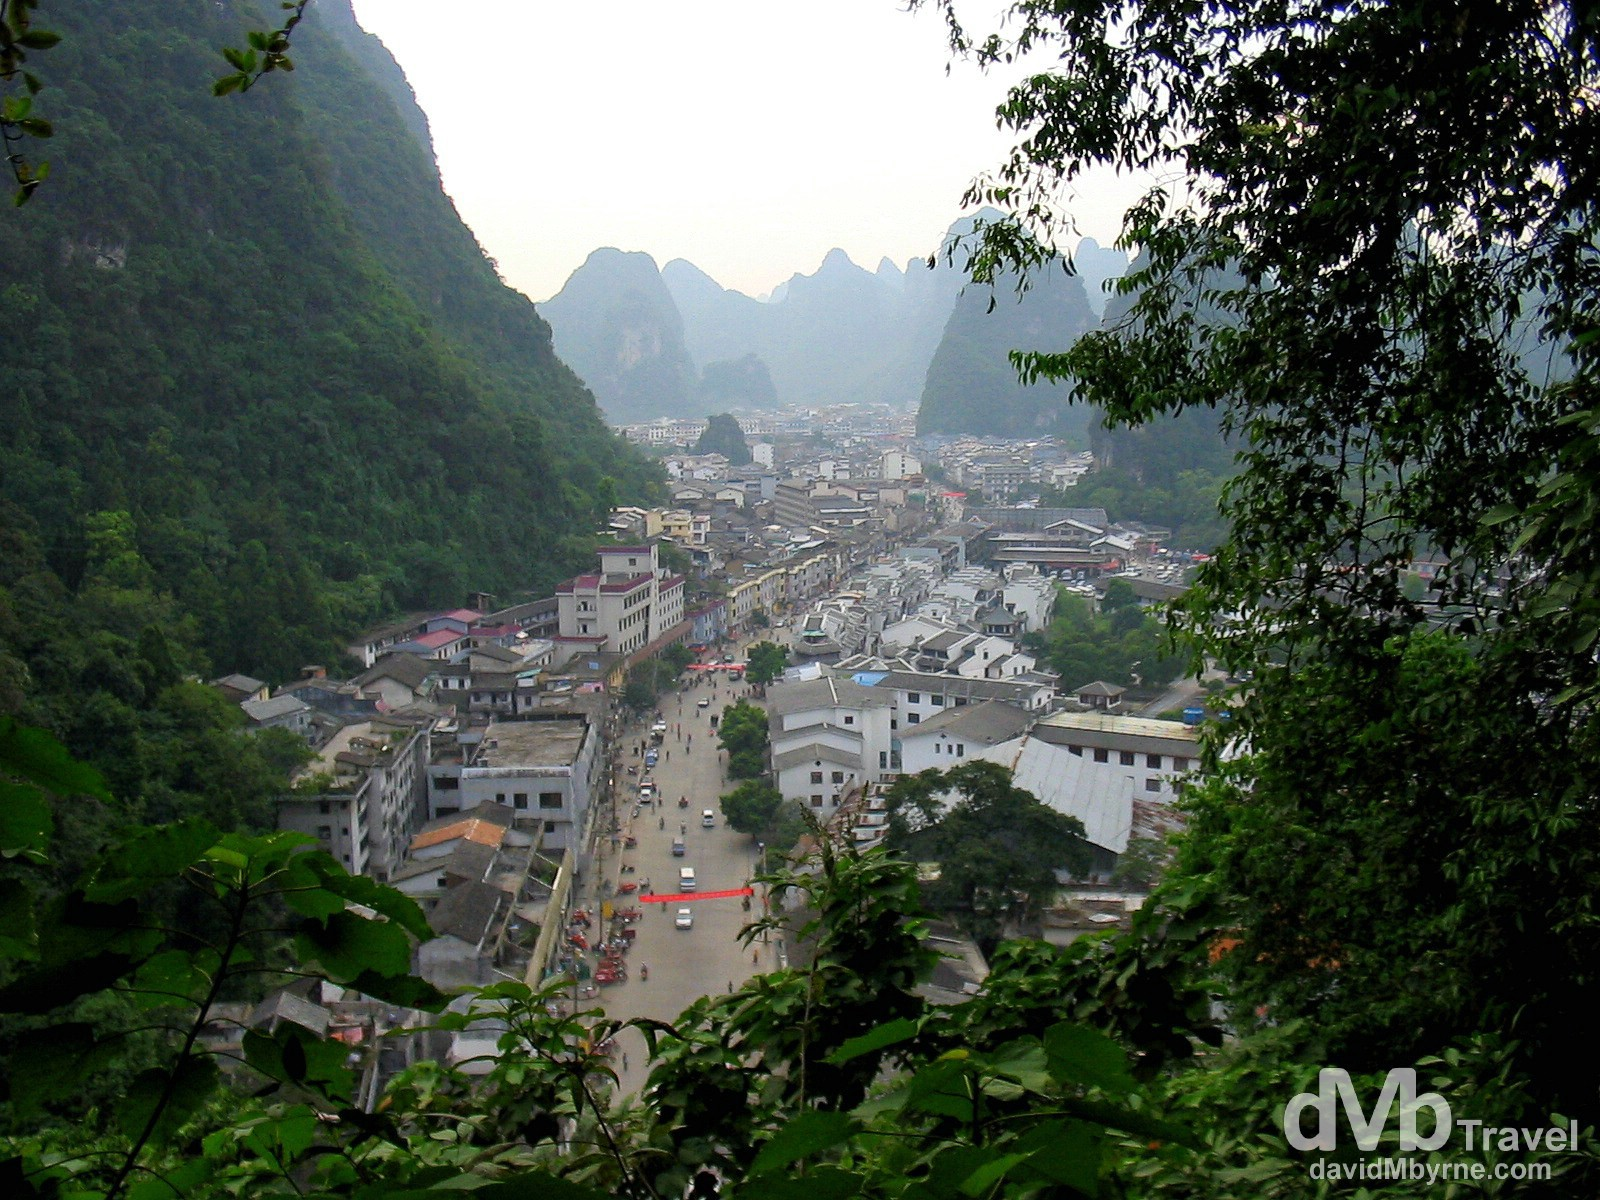 A view from the slopes of Bi Lian (Green Lotus) Hill of Yangshou, Guangxi Province, Southern China. September 10th, 2004.